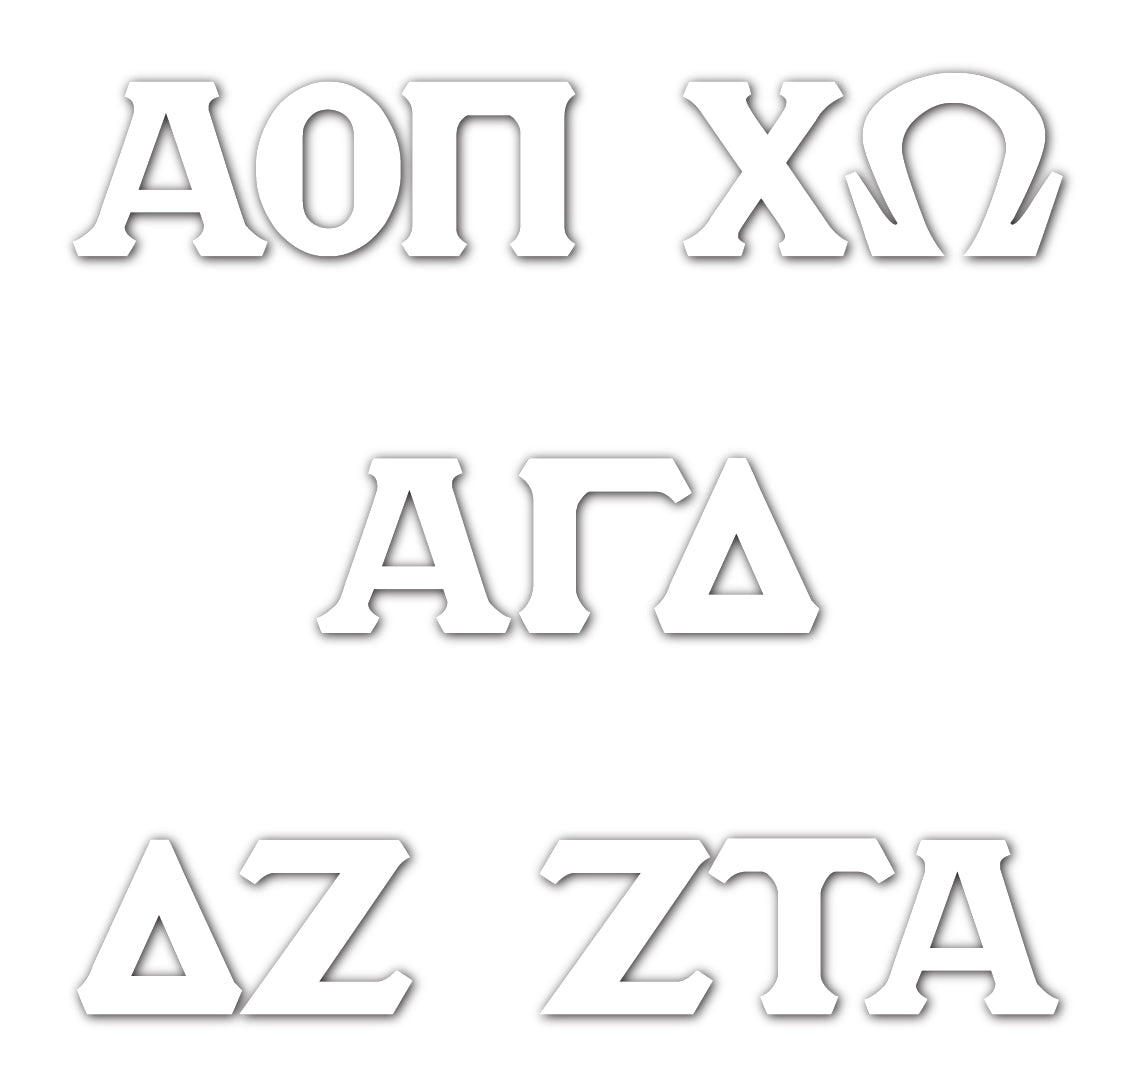 Vinyl Sticker Decals - Greek Letters